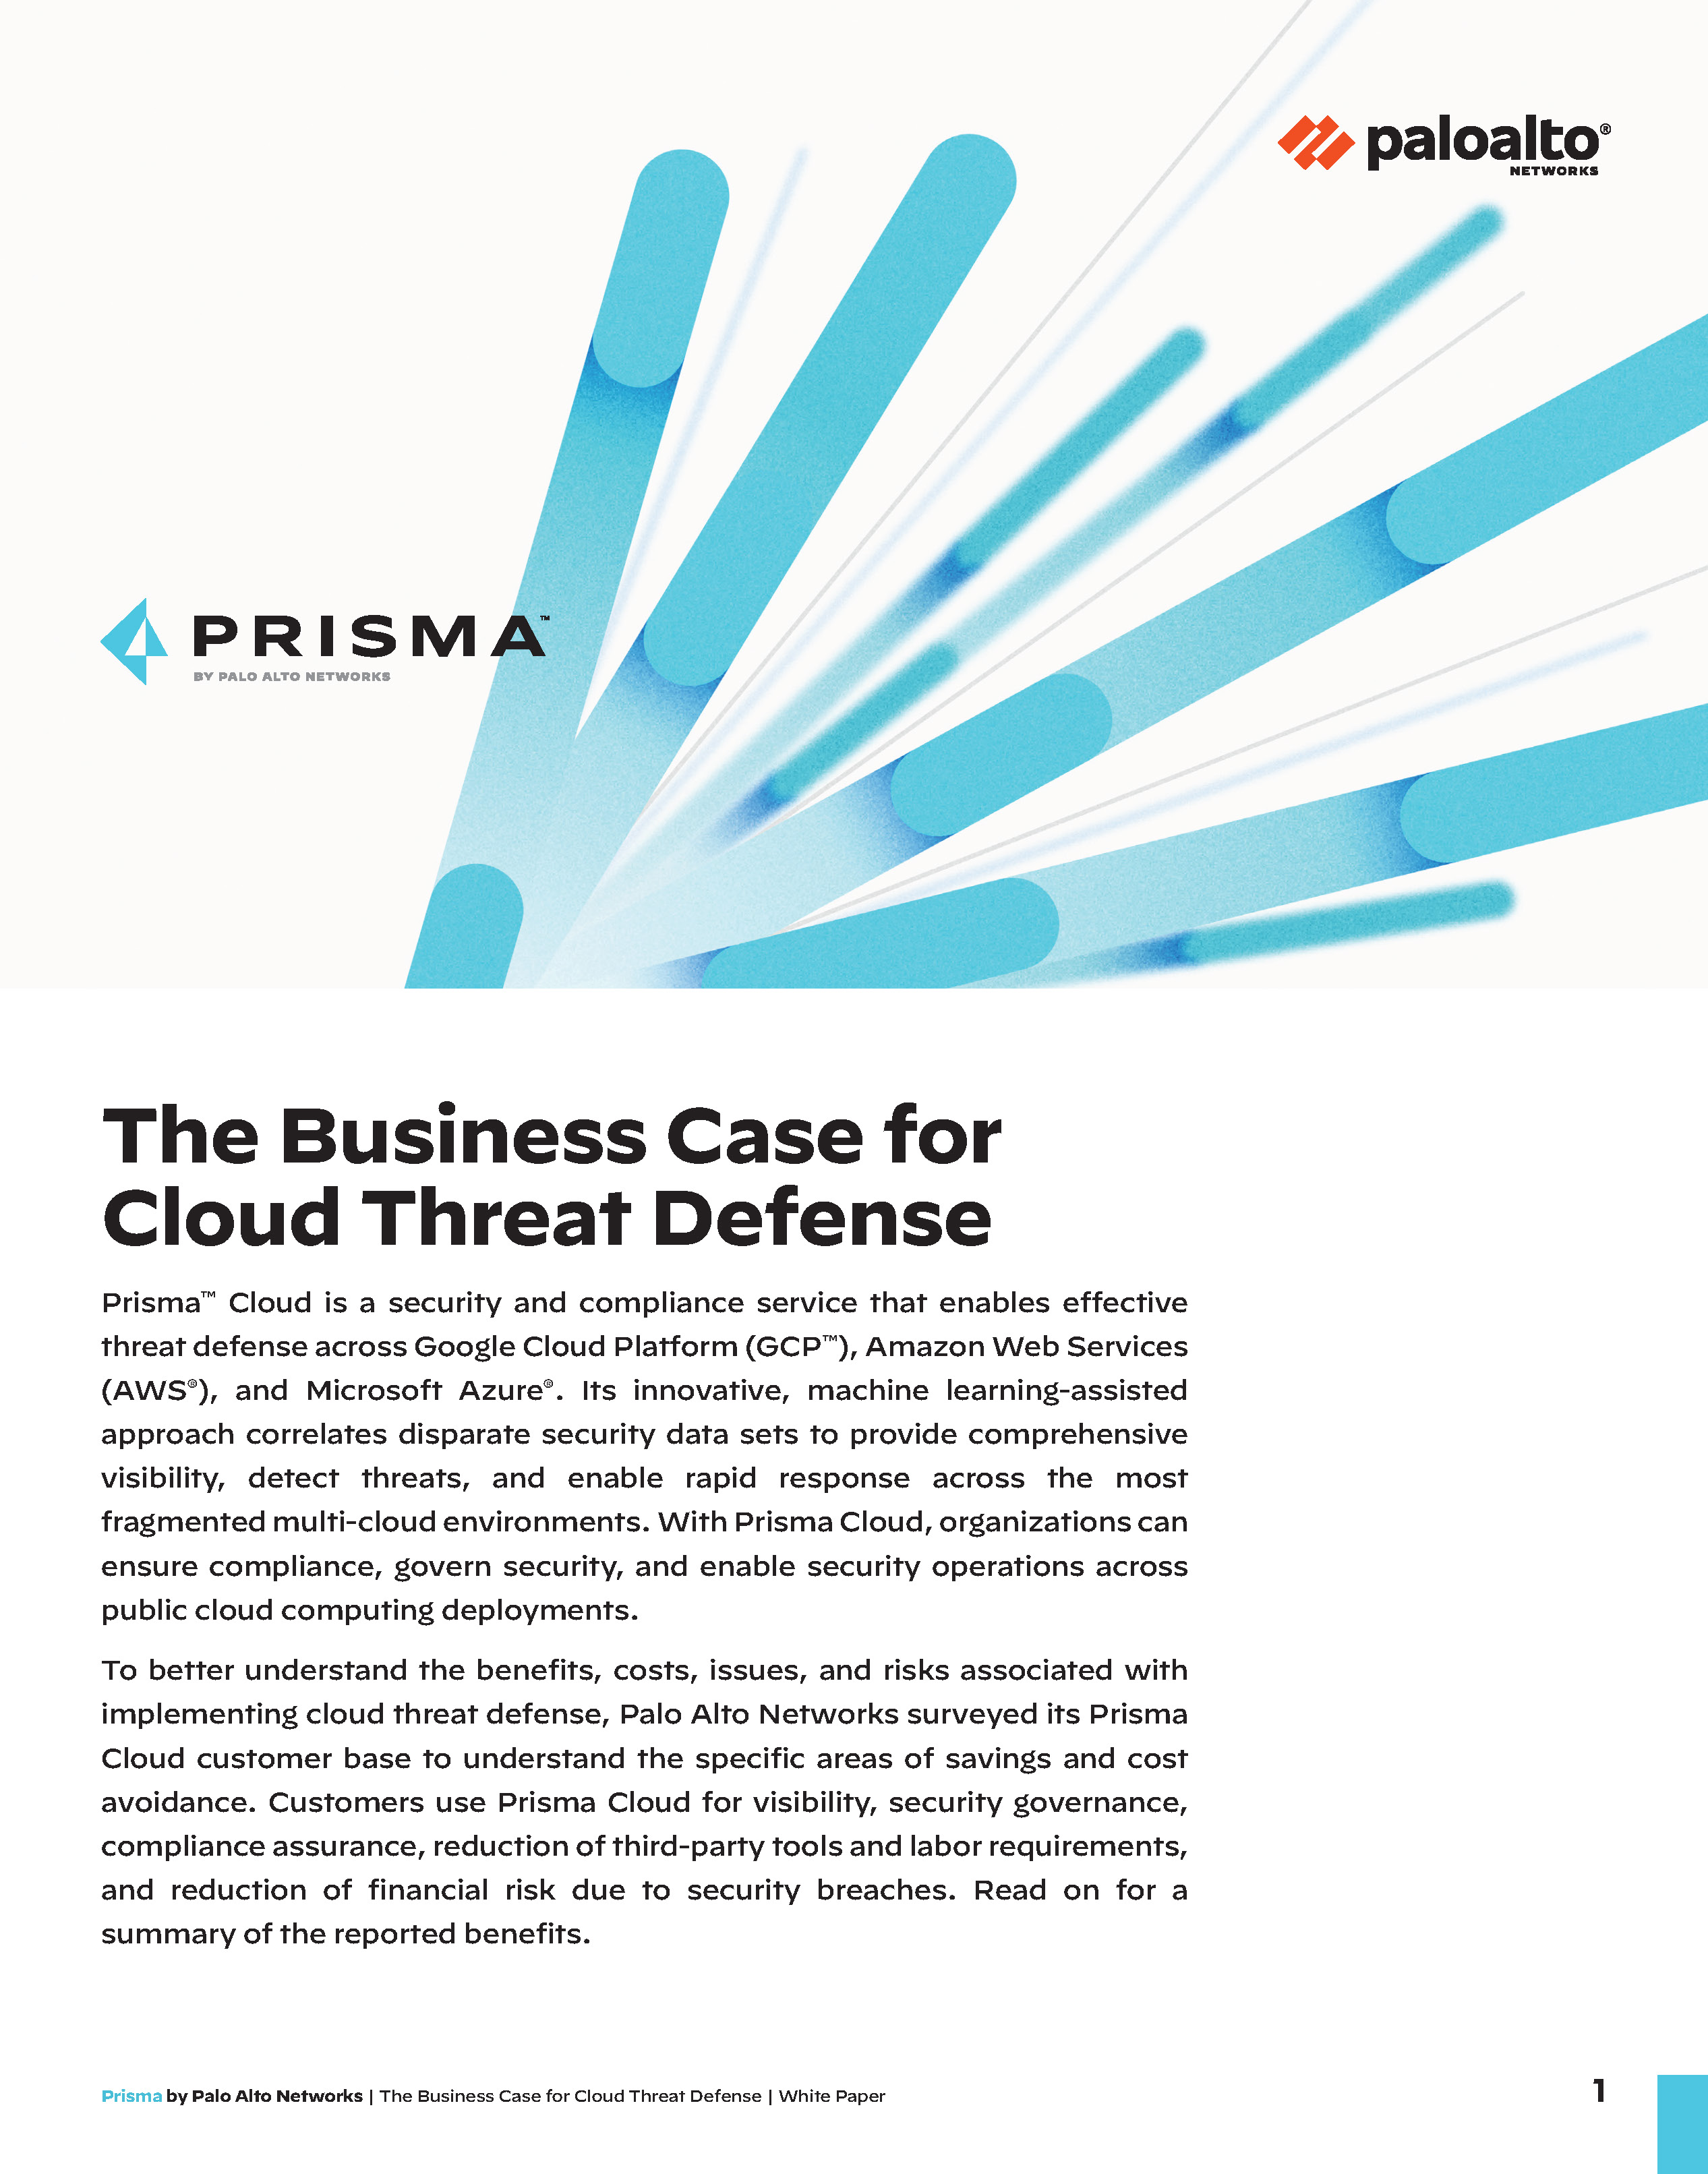 business-case-for-cloud-threat-defense_Page_1